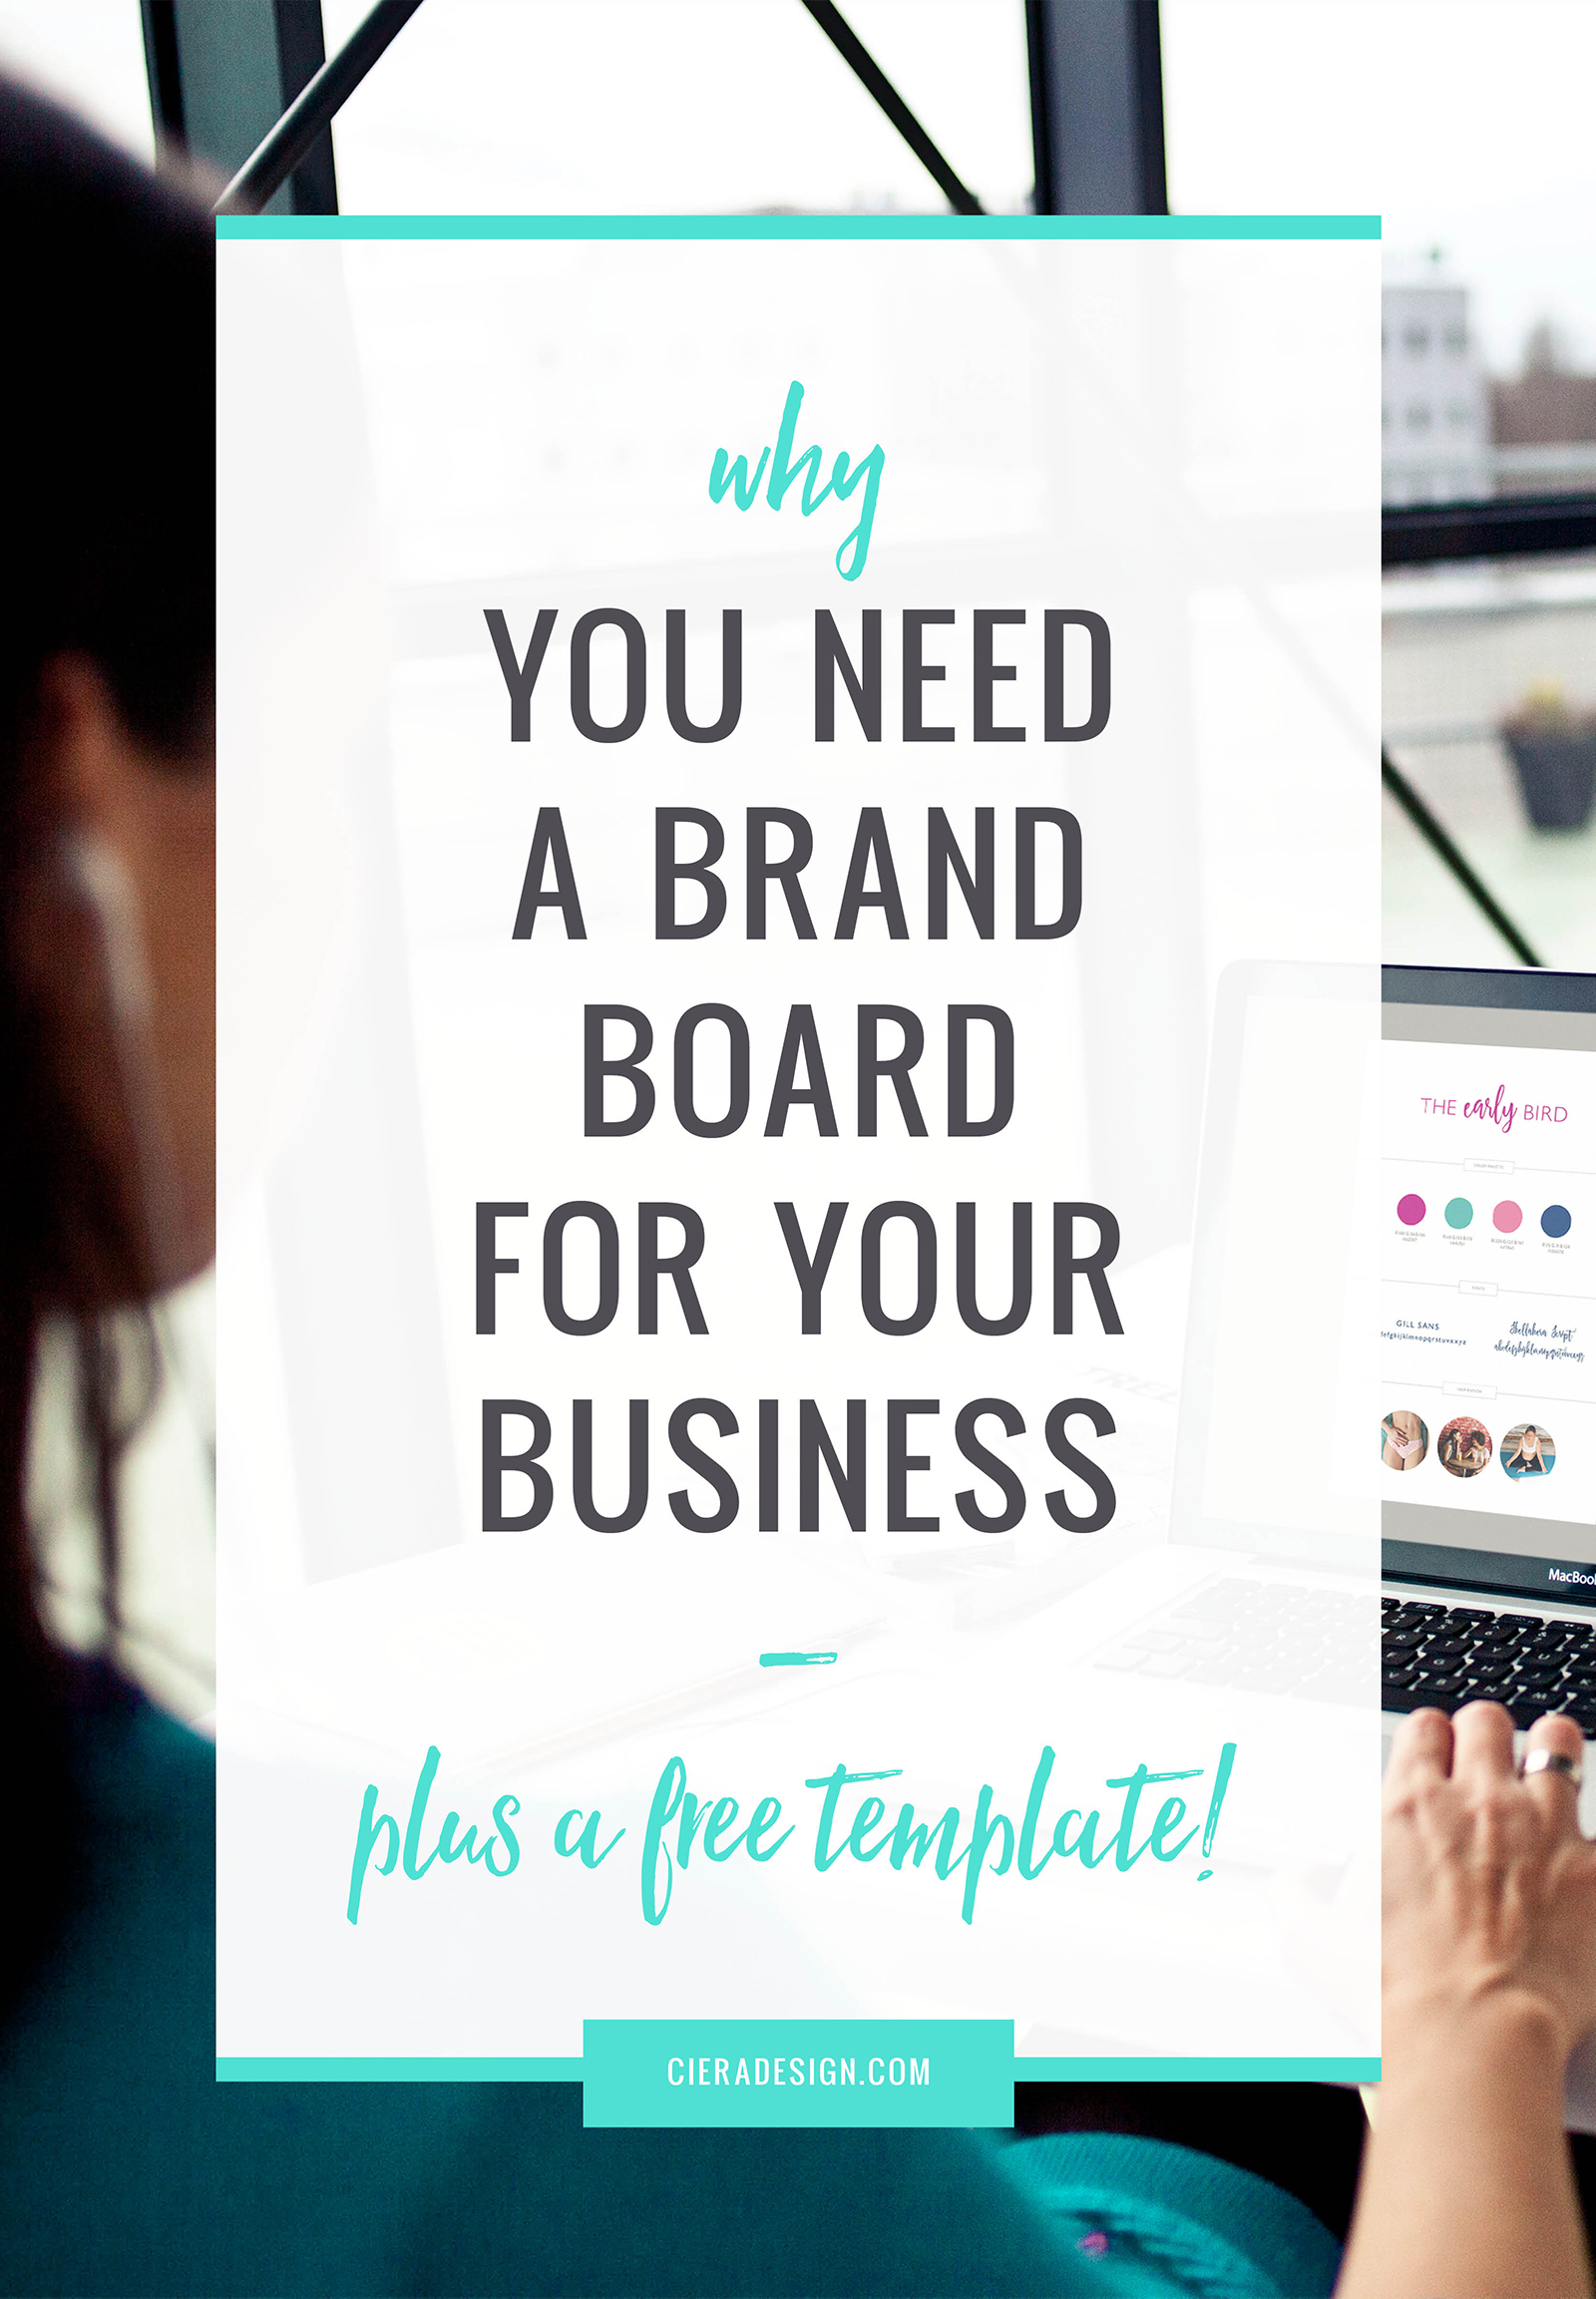 Being cohesive and consistent across all platforms is key to building trust with your customers.⁣  ✨ Enter the Brand Board ✨⁣  A brand board is a simple document to pull together all of your brand identity pieces in one neat place to make sure that everything you put out into the world for your business is consistent.⁣  ✨ BONUS: It's FREE! ✨⁣  Click through to download both Canva and Photoshop versions!⁣